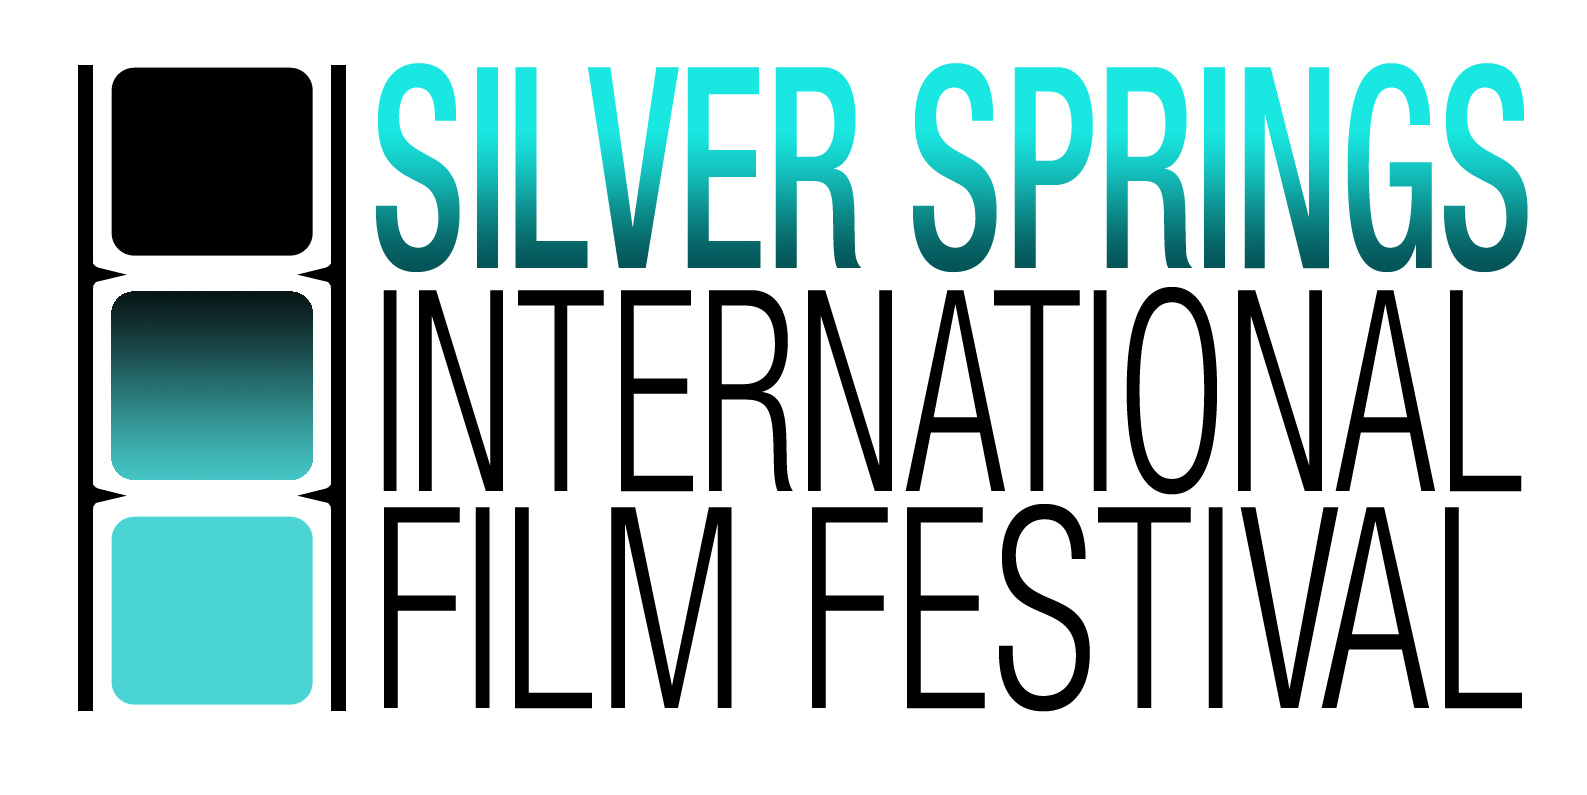 Silver Springs International Film Festival